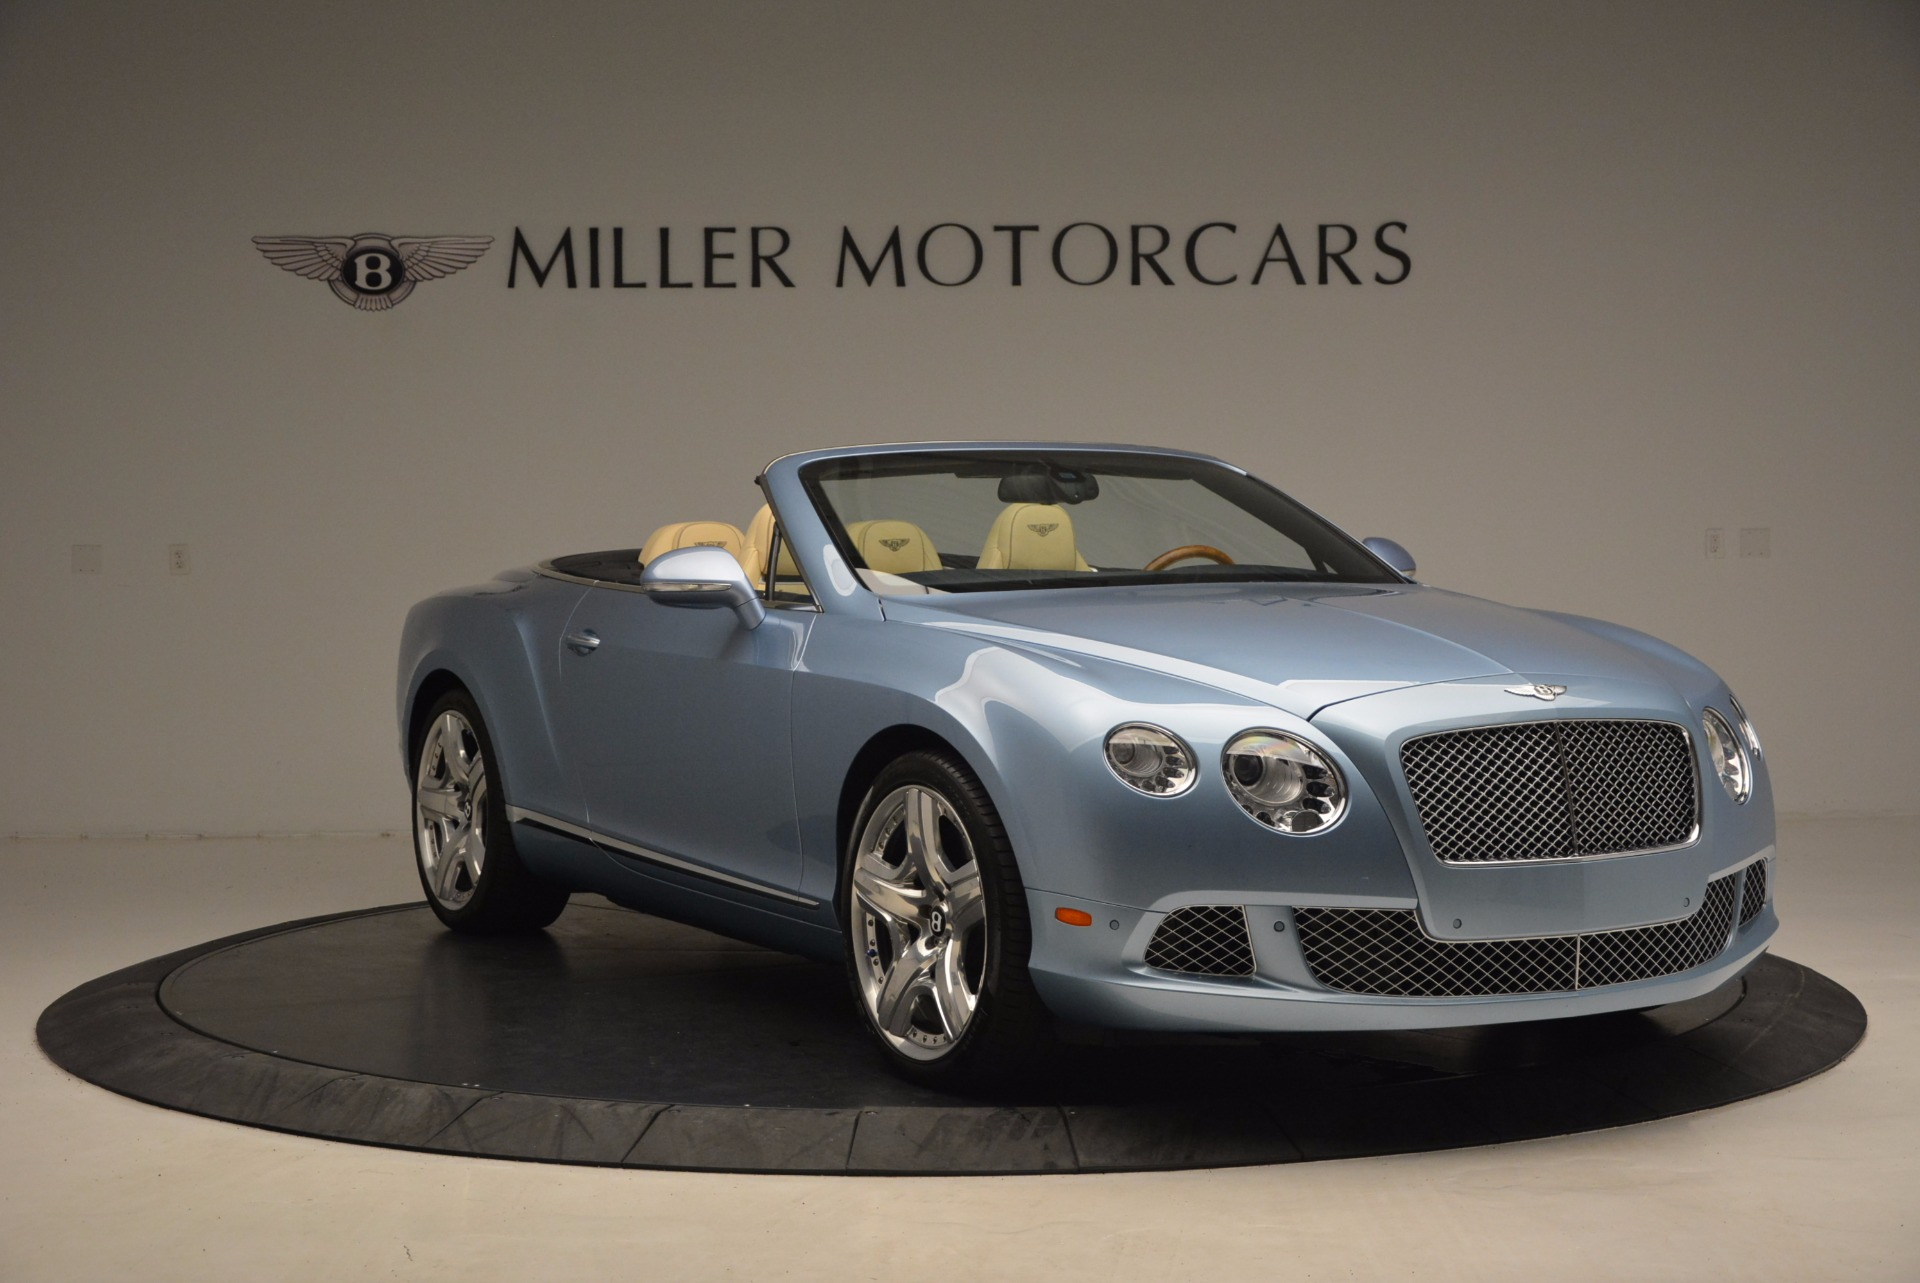 Used 2012 Bentley Continental GTC W12 For Sale In Westport, CT 1475_p11